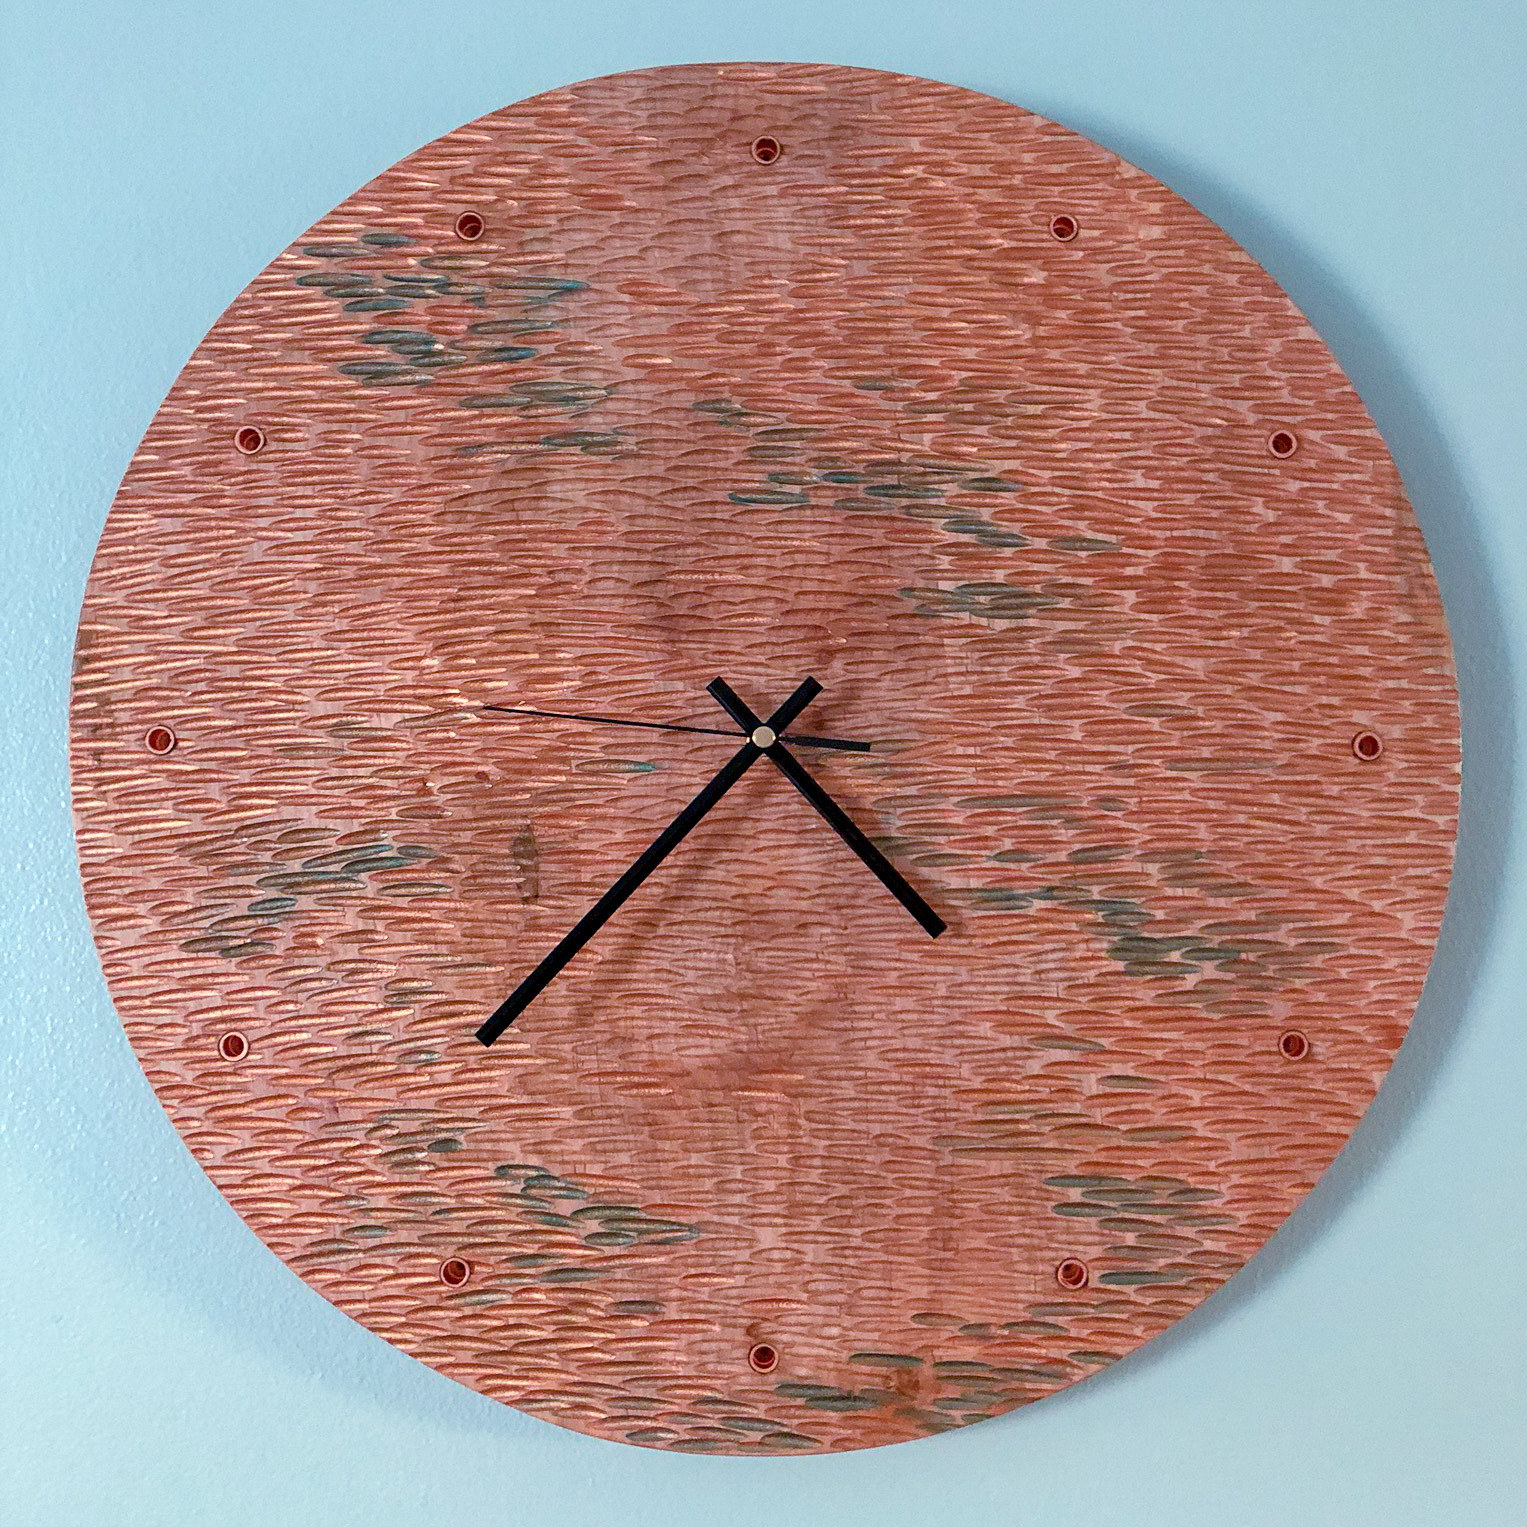 Handcrafted Wall Clocks- Add a little Pizazz to your room!